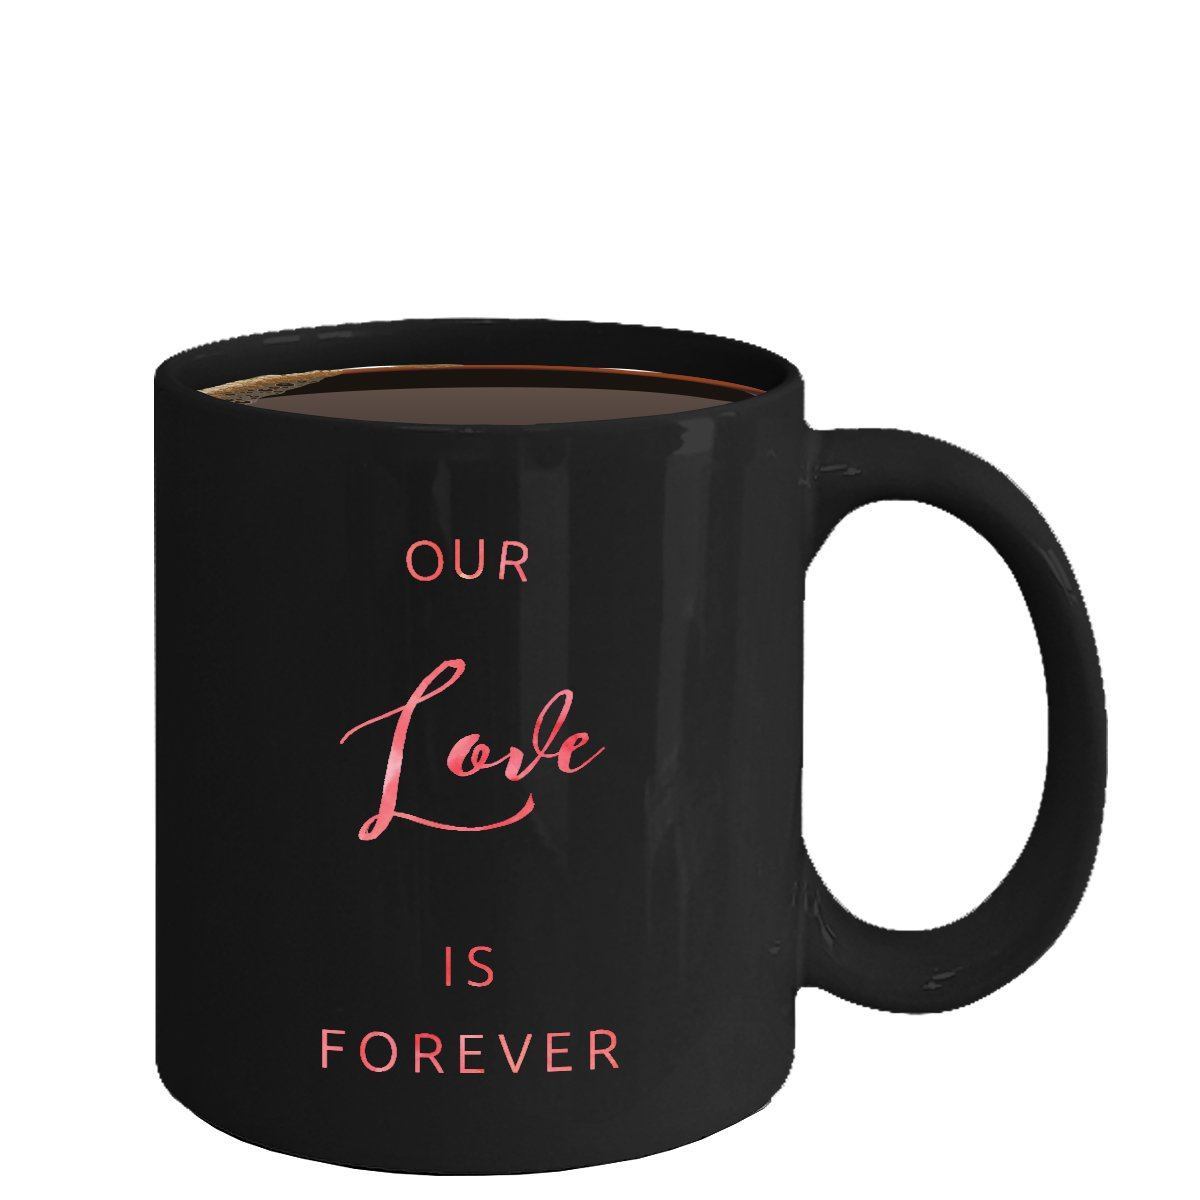 Love Ceramic Coffee Mug - Our Love Is Forever - Cute Large Cup (Black) - Best Gift for Men, Women